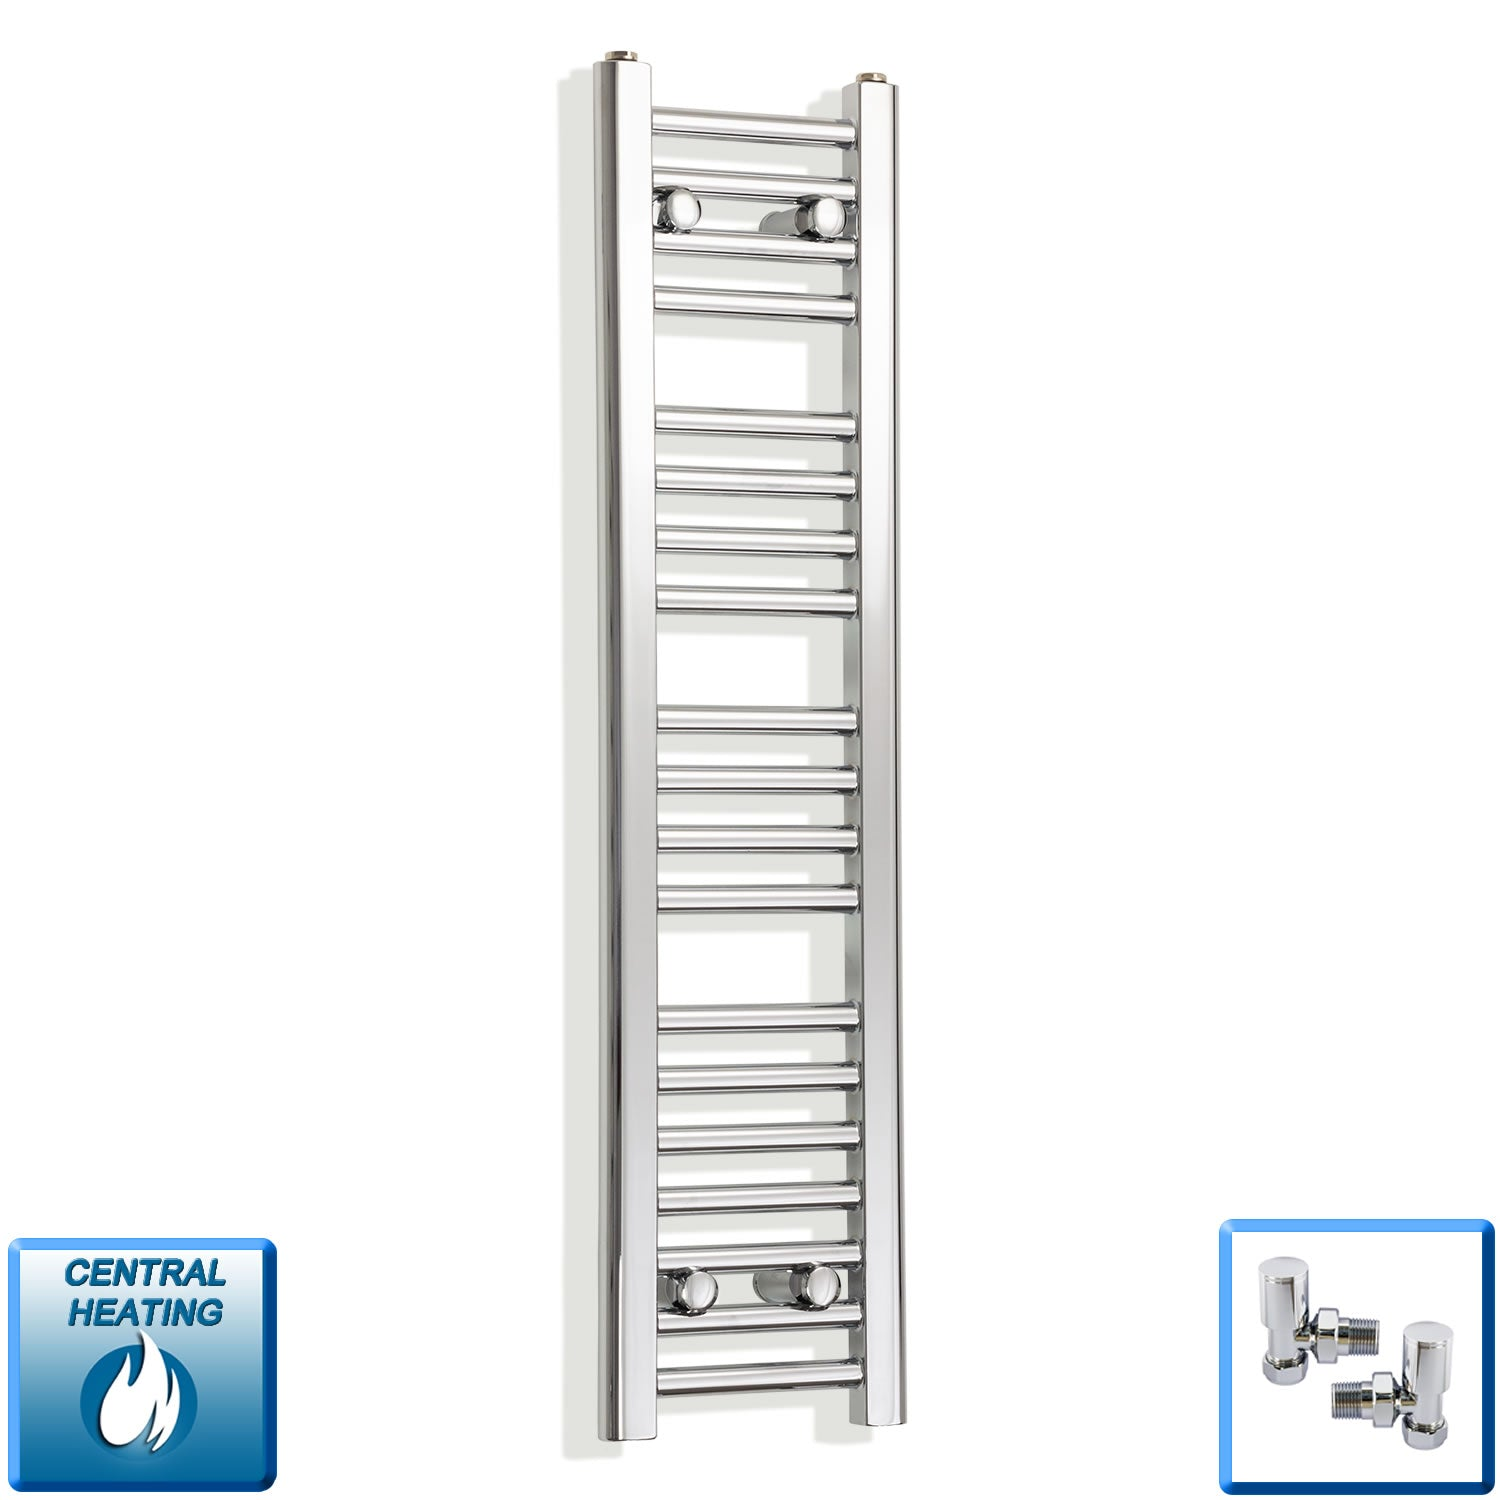 200mm Wide 1000mm High Flat Chrome Heated Towel Rail Radiator,With Angled Valve